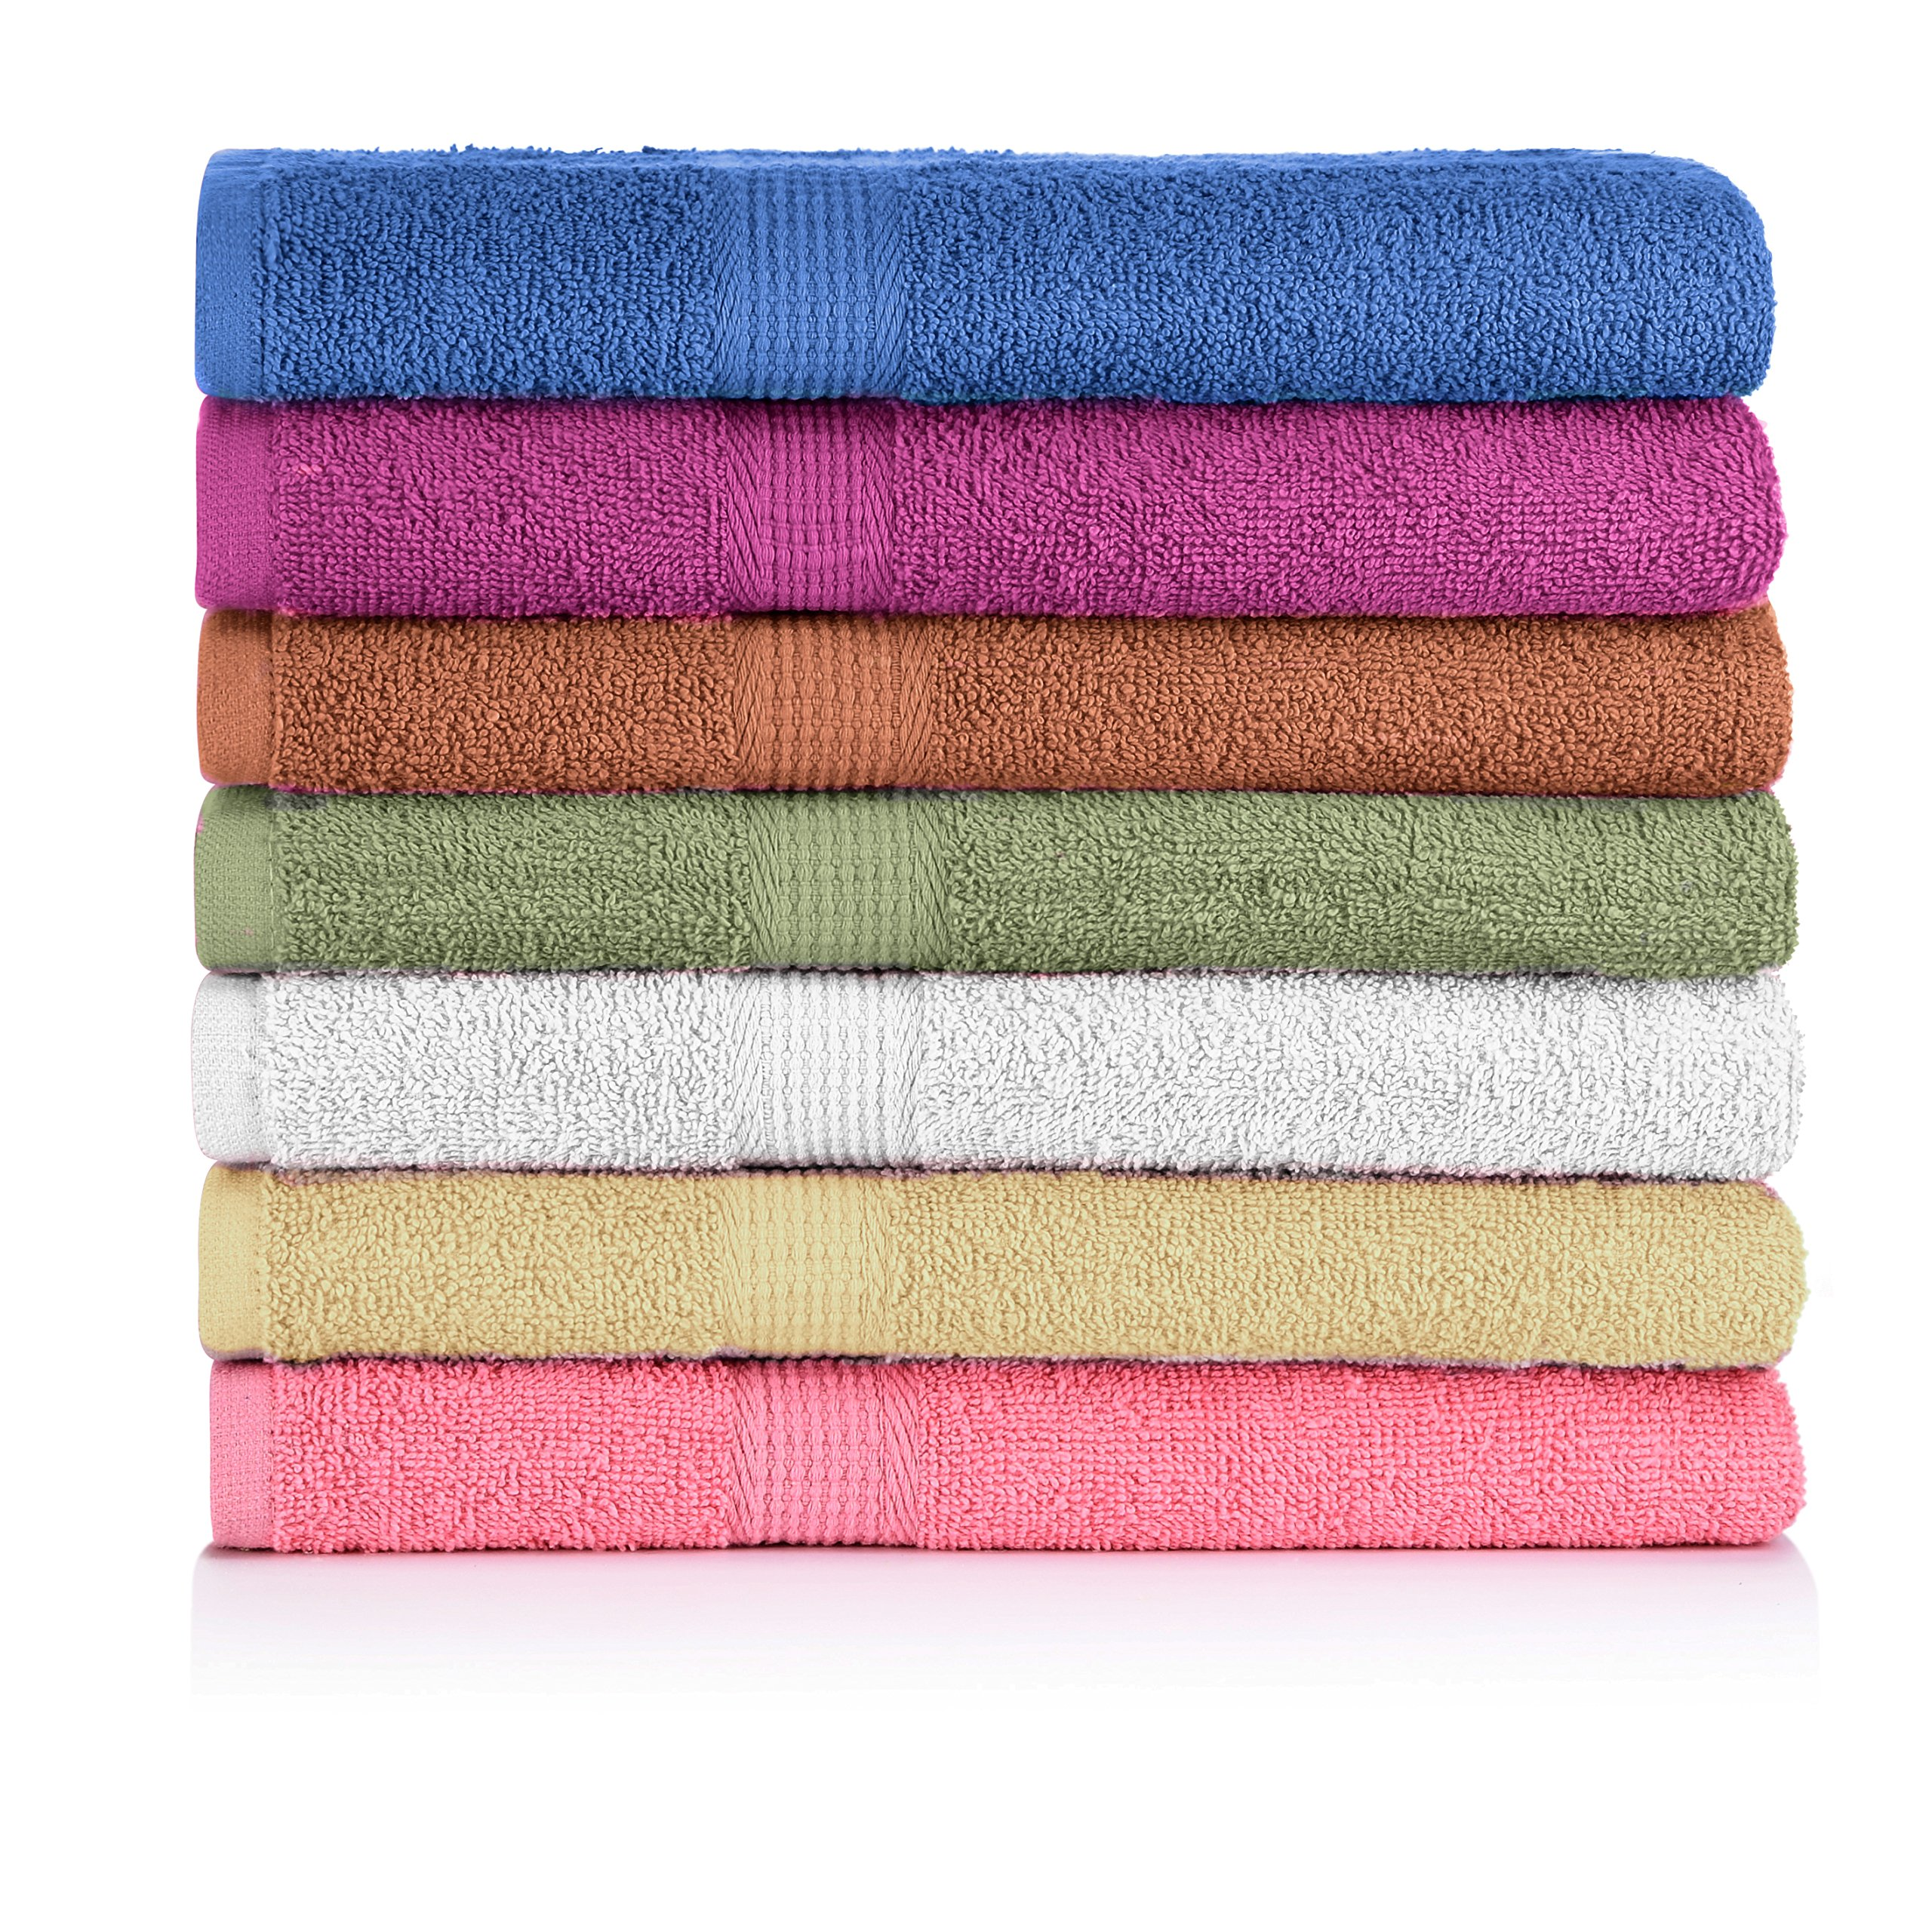 CrystalTowels 7-Pack Bath Towels - Extra-Absorbent - 100% Cotton - 27'' x 52''